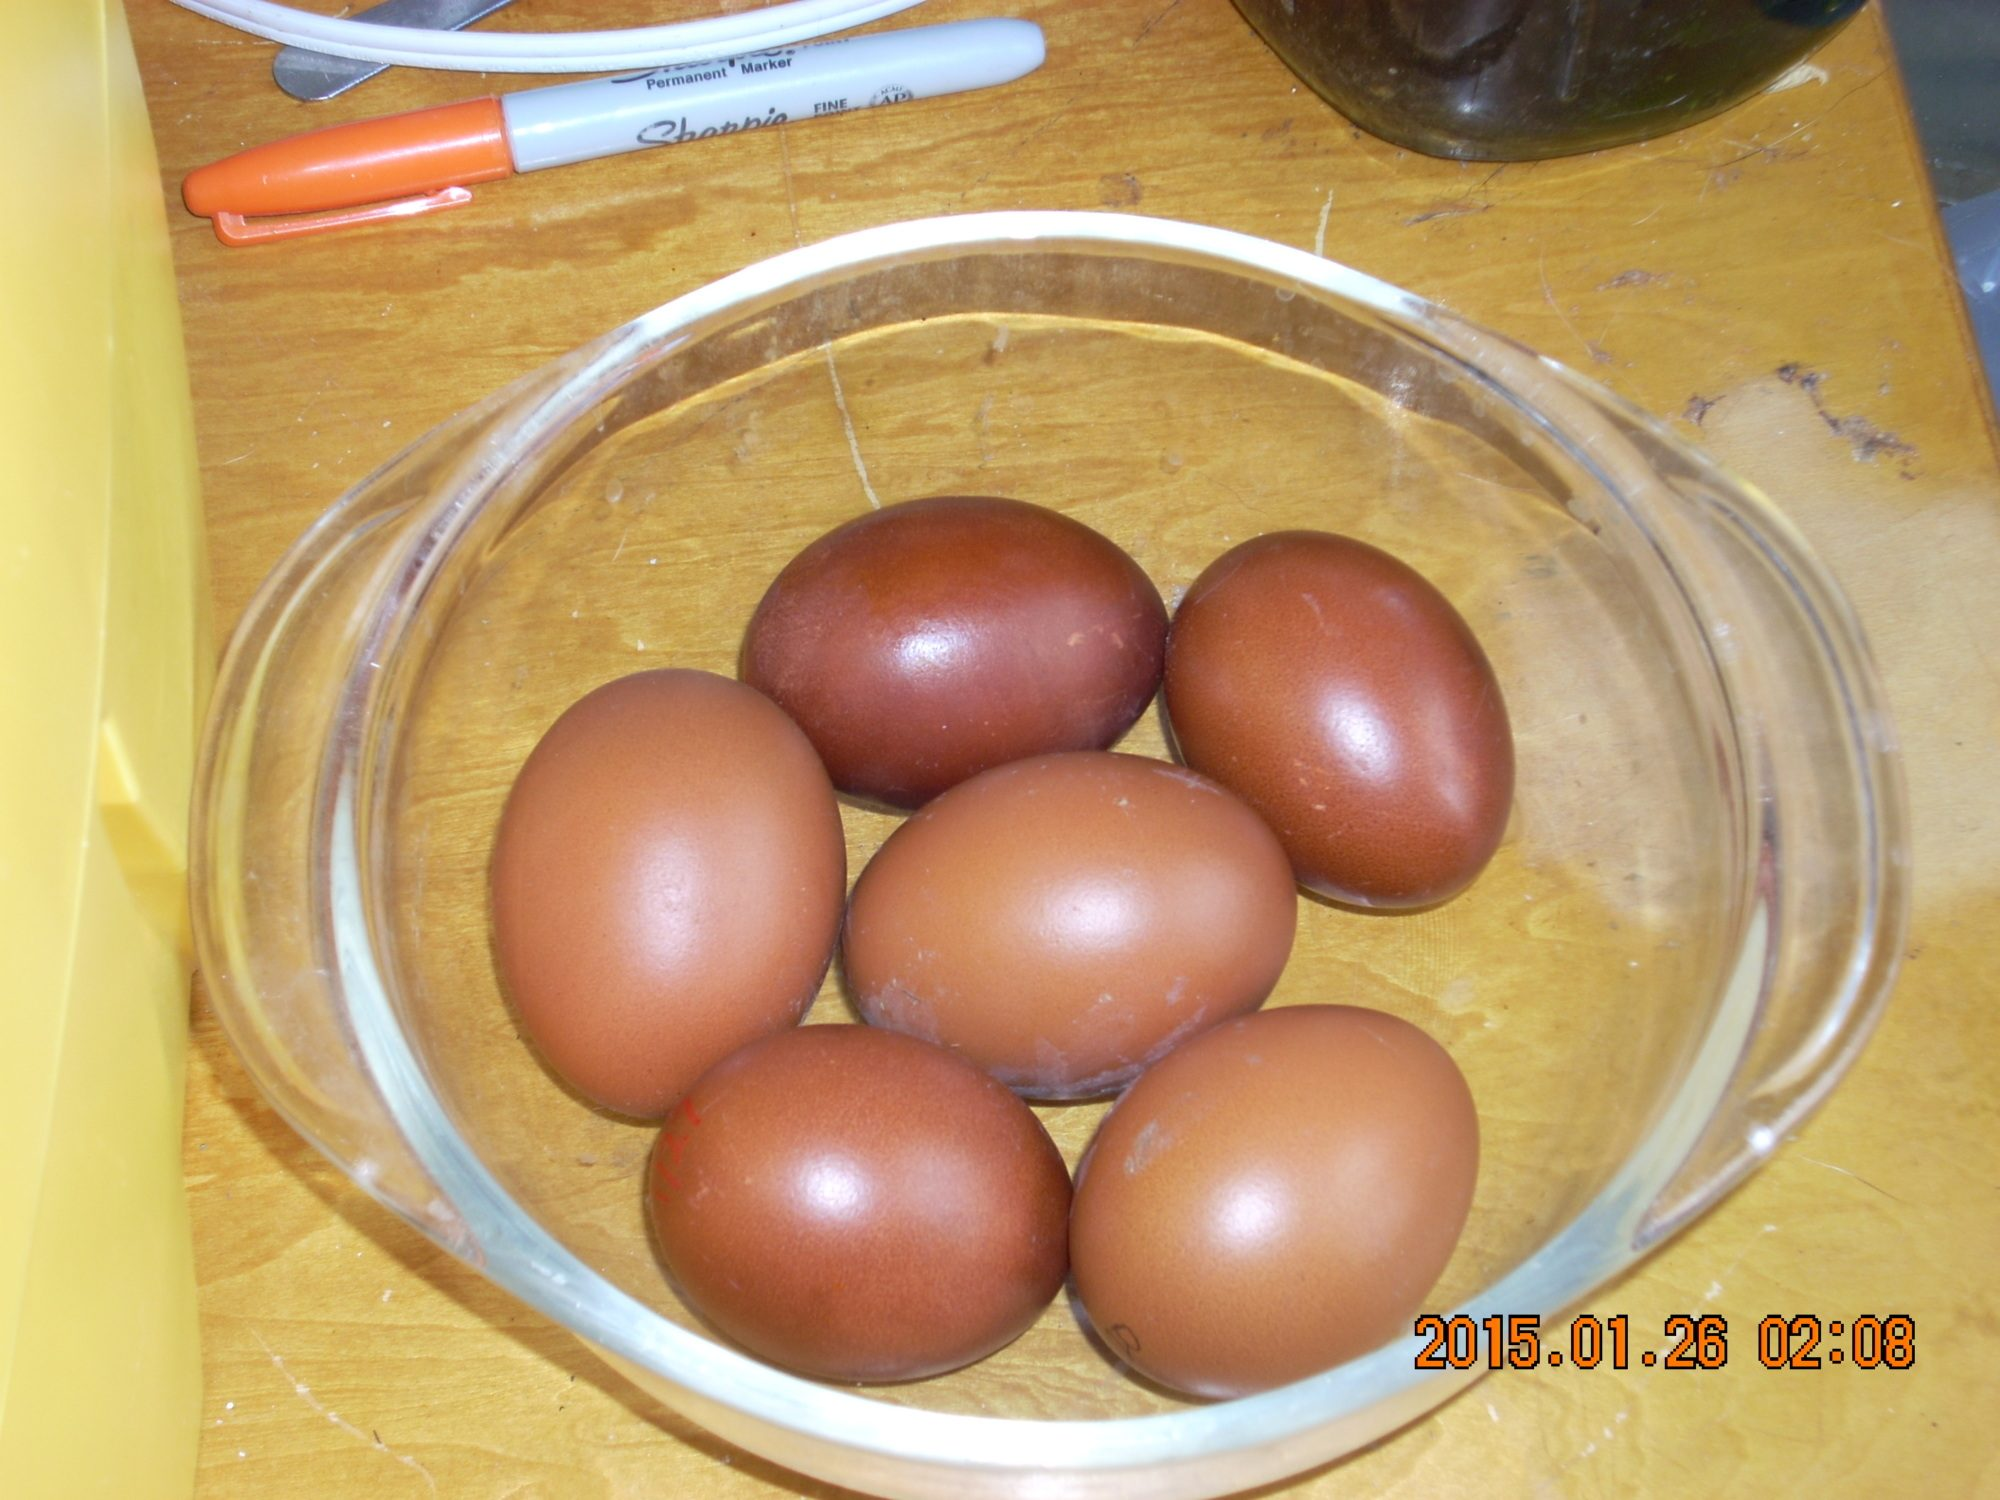 This is an example of this spring's eggs.  Taken from my Columbian Marans.  Taken in natural light, but the flash still went off and washed them out a bit.     I'm currently hatching eggs for myself.  Generation 8.  Will have chicks on the ground by Feb1st 2015.